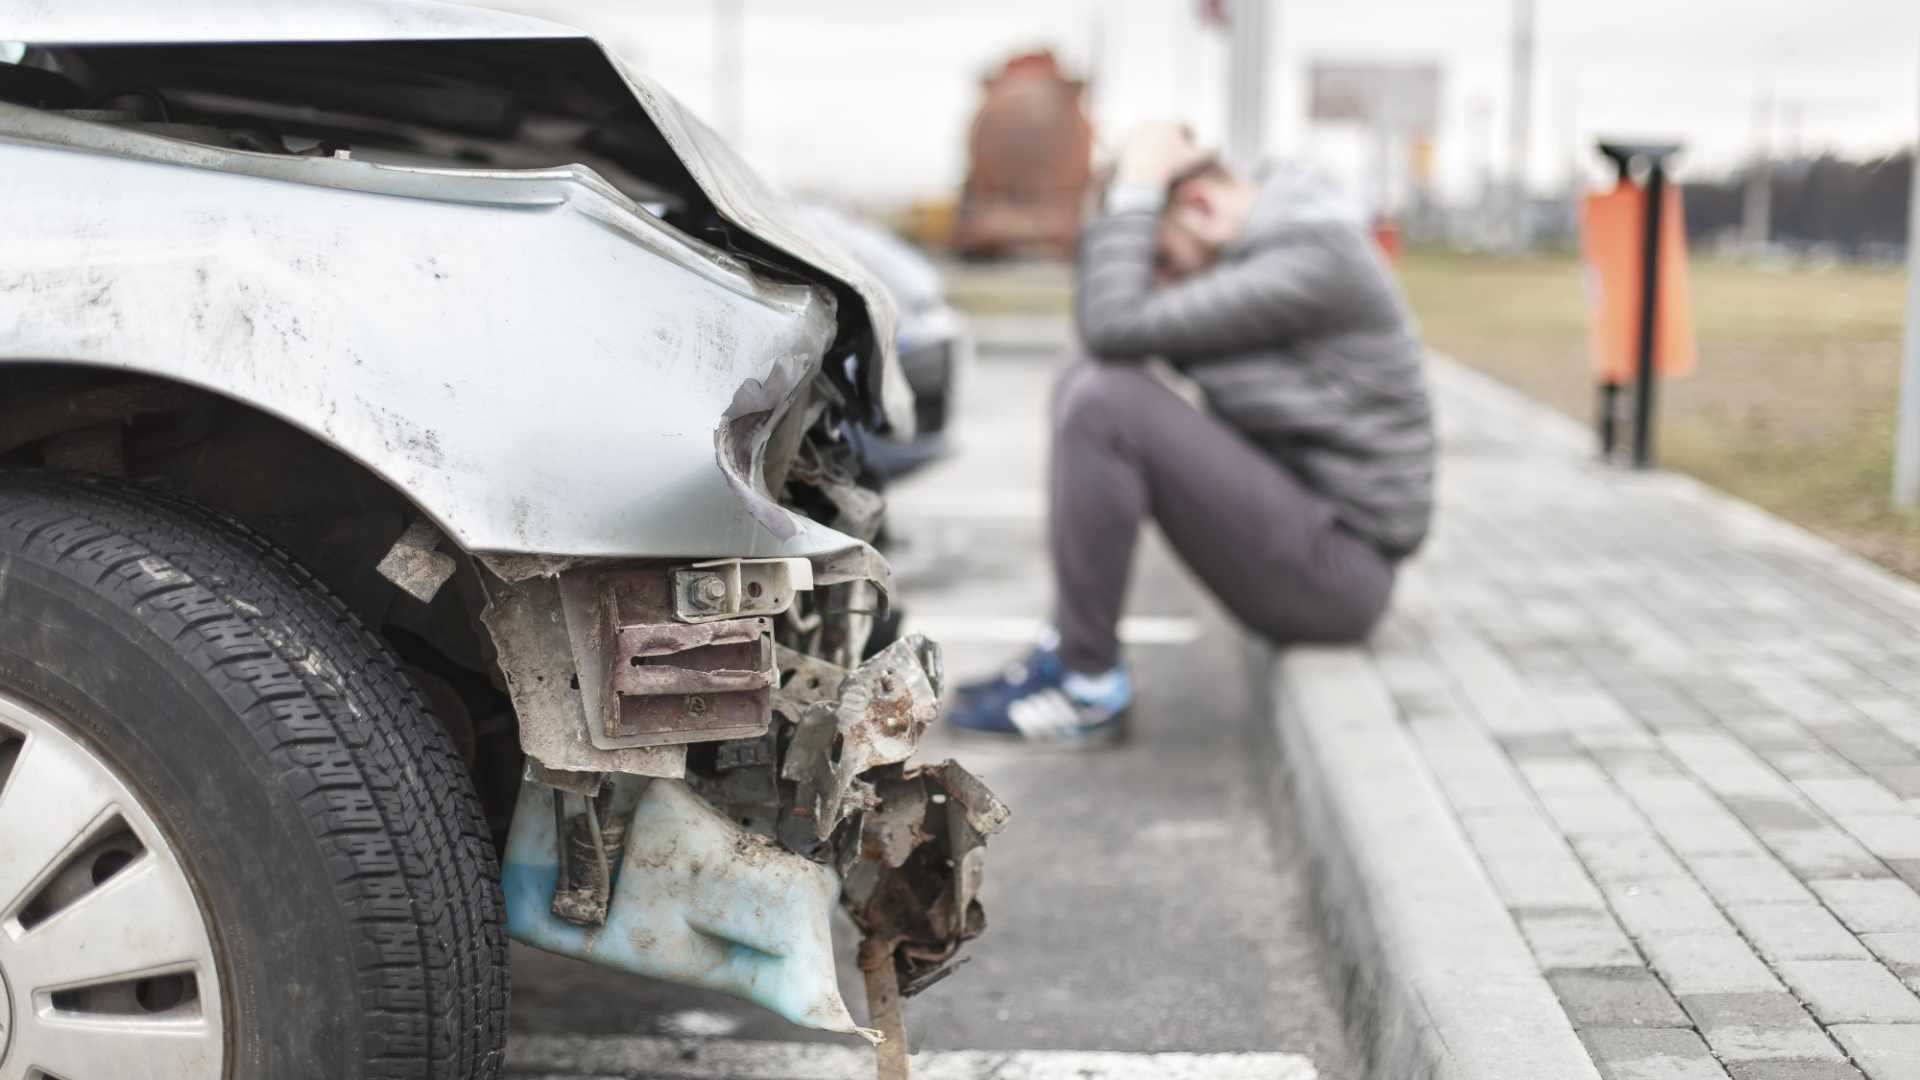 This Mechanic Fixed My Car After a Stressful Accident--and Taught an Outstanding Lesson in Customer Service